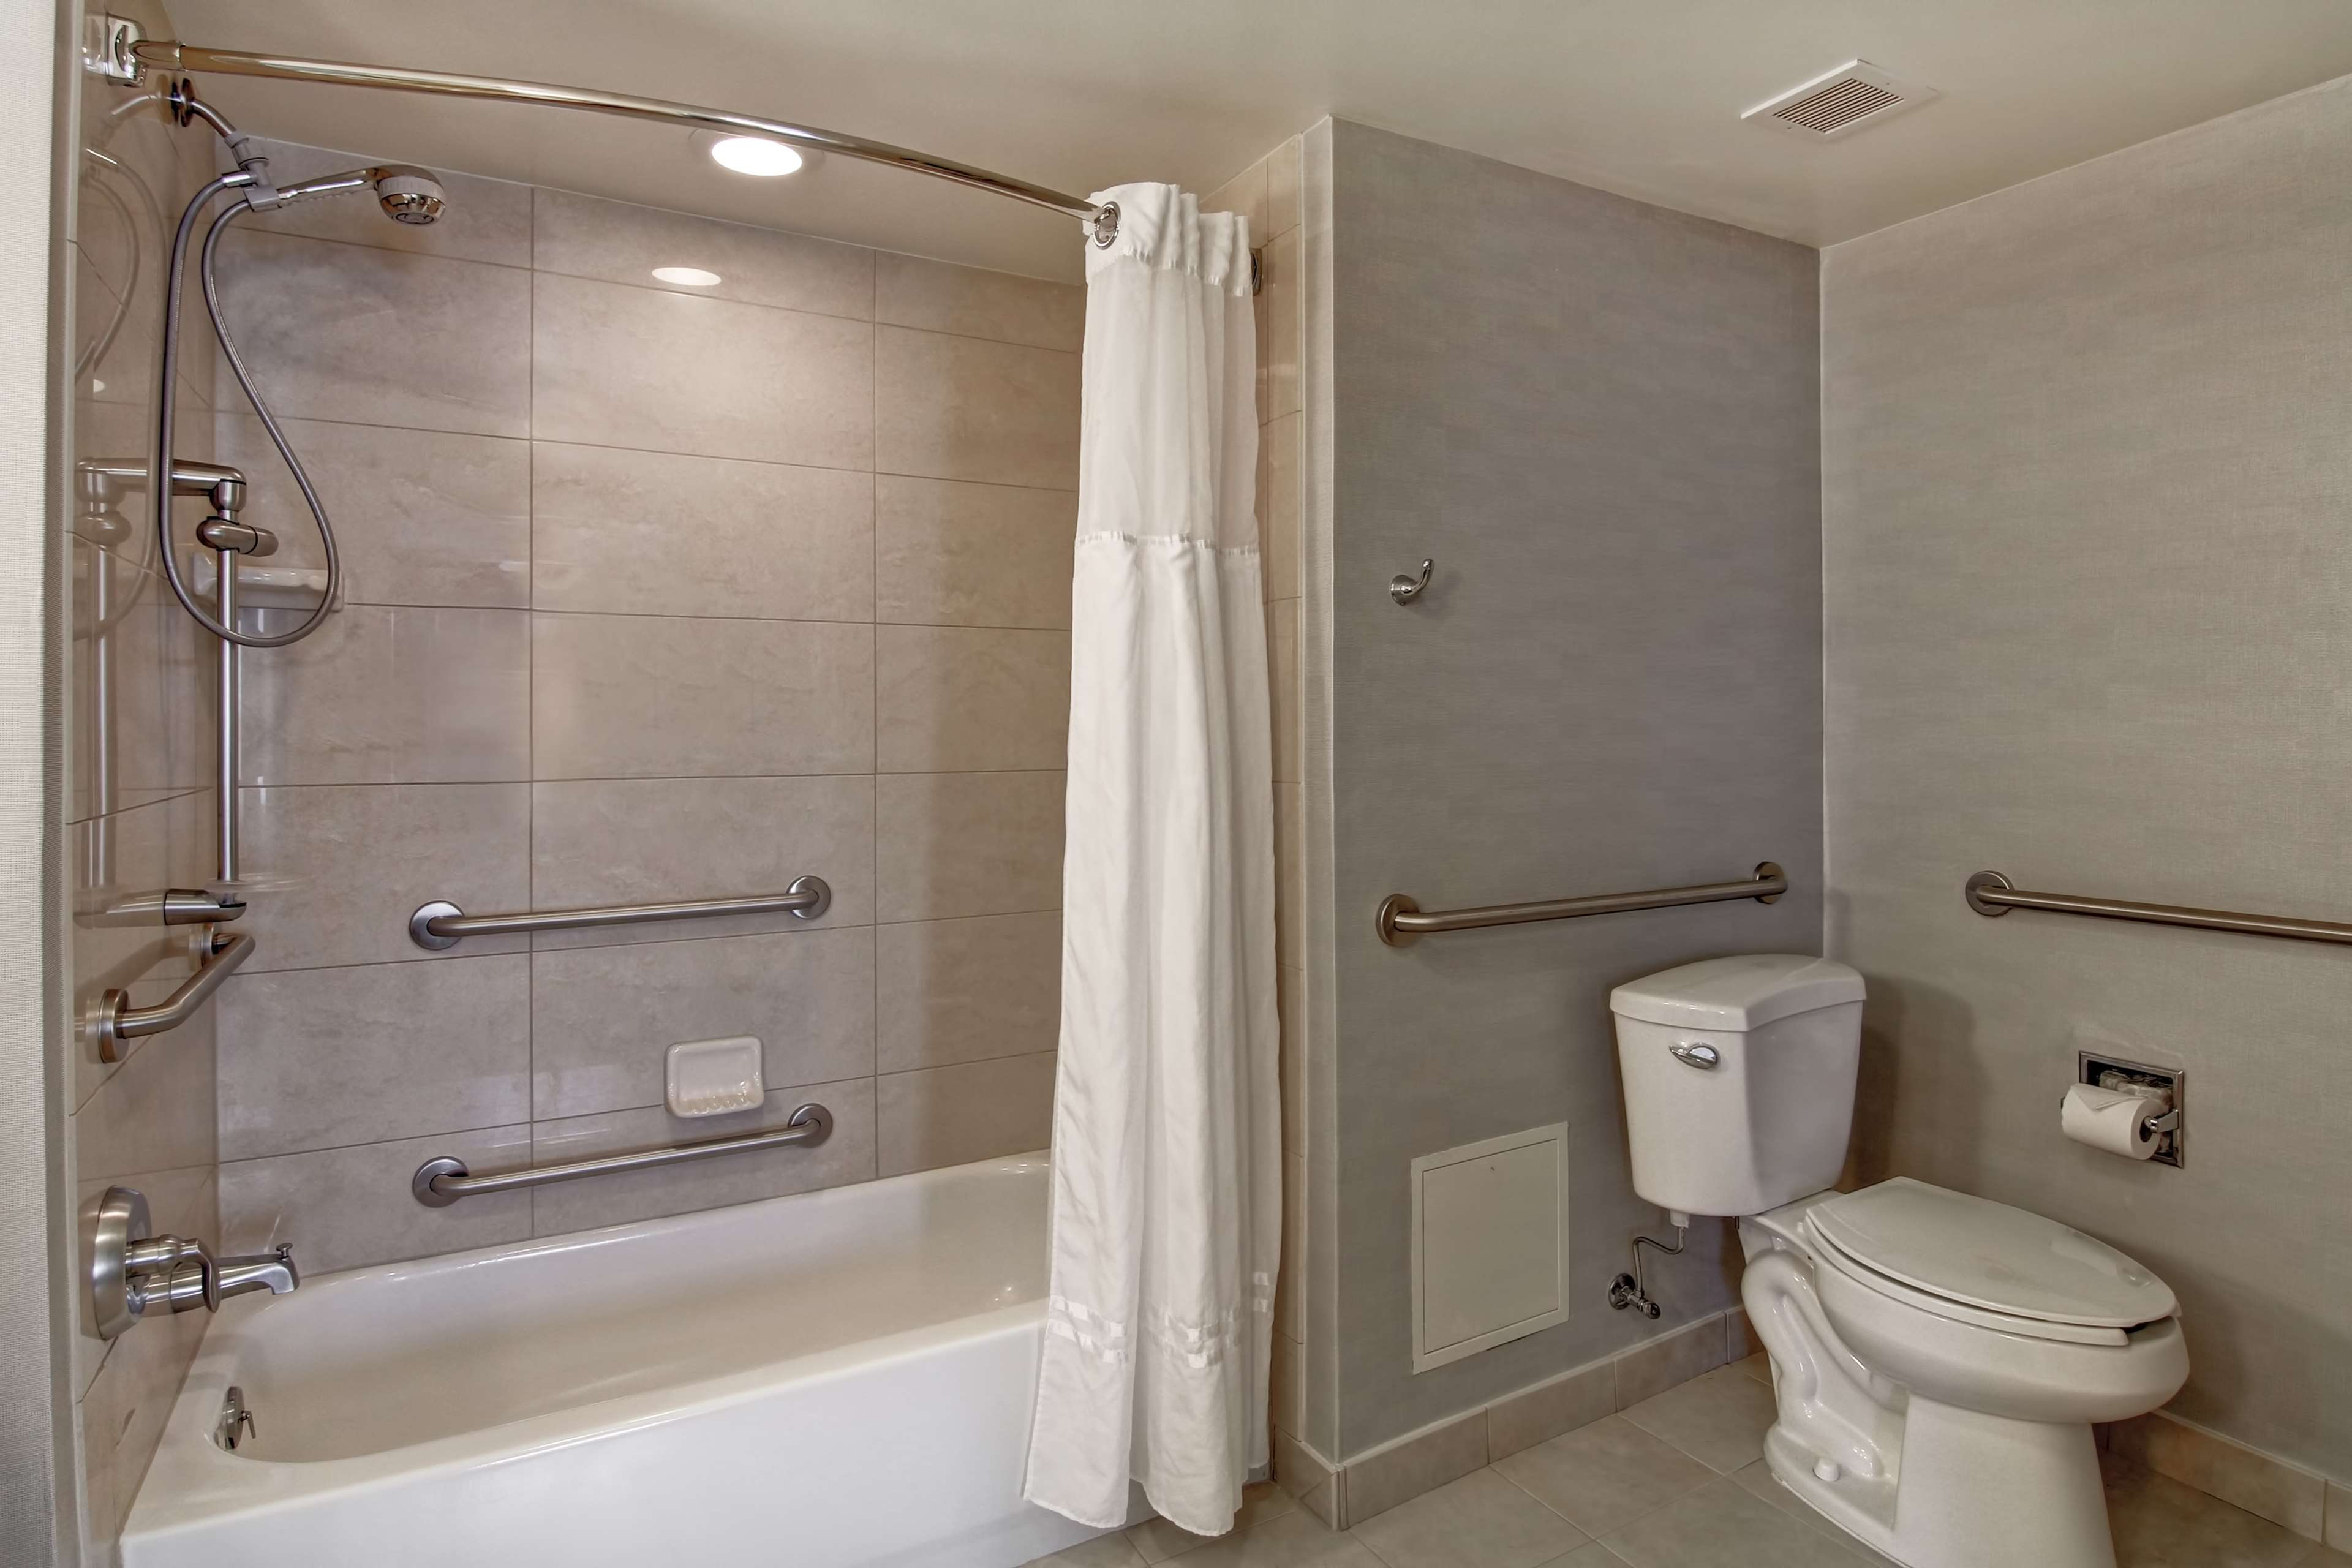 Homewood Suites by Hilton Bentonville-Rogers image 16